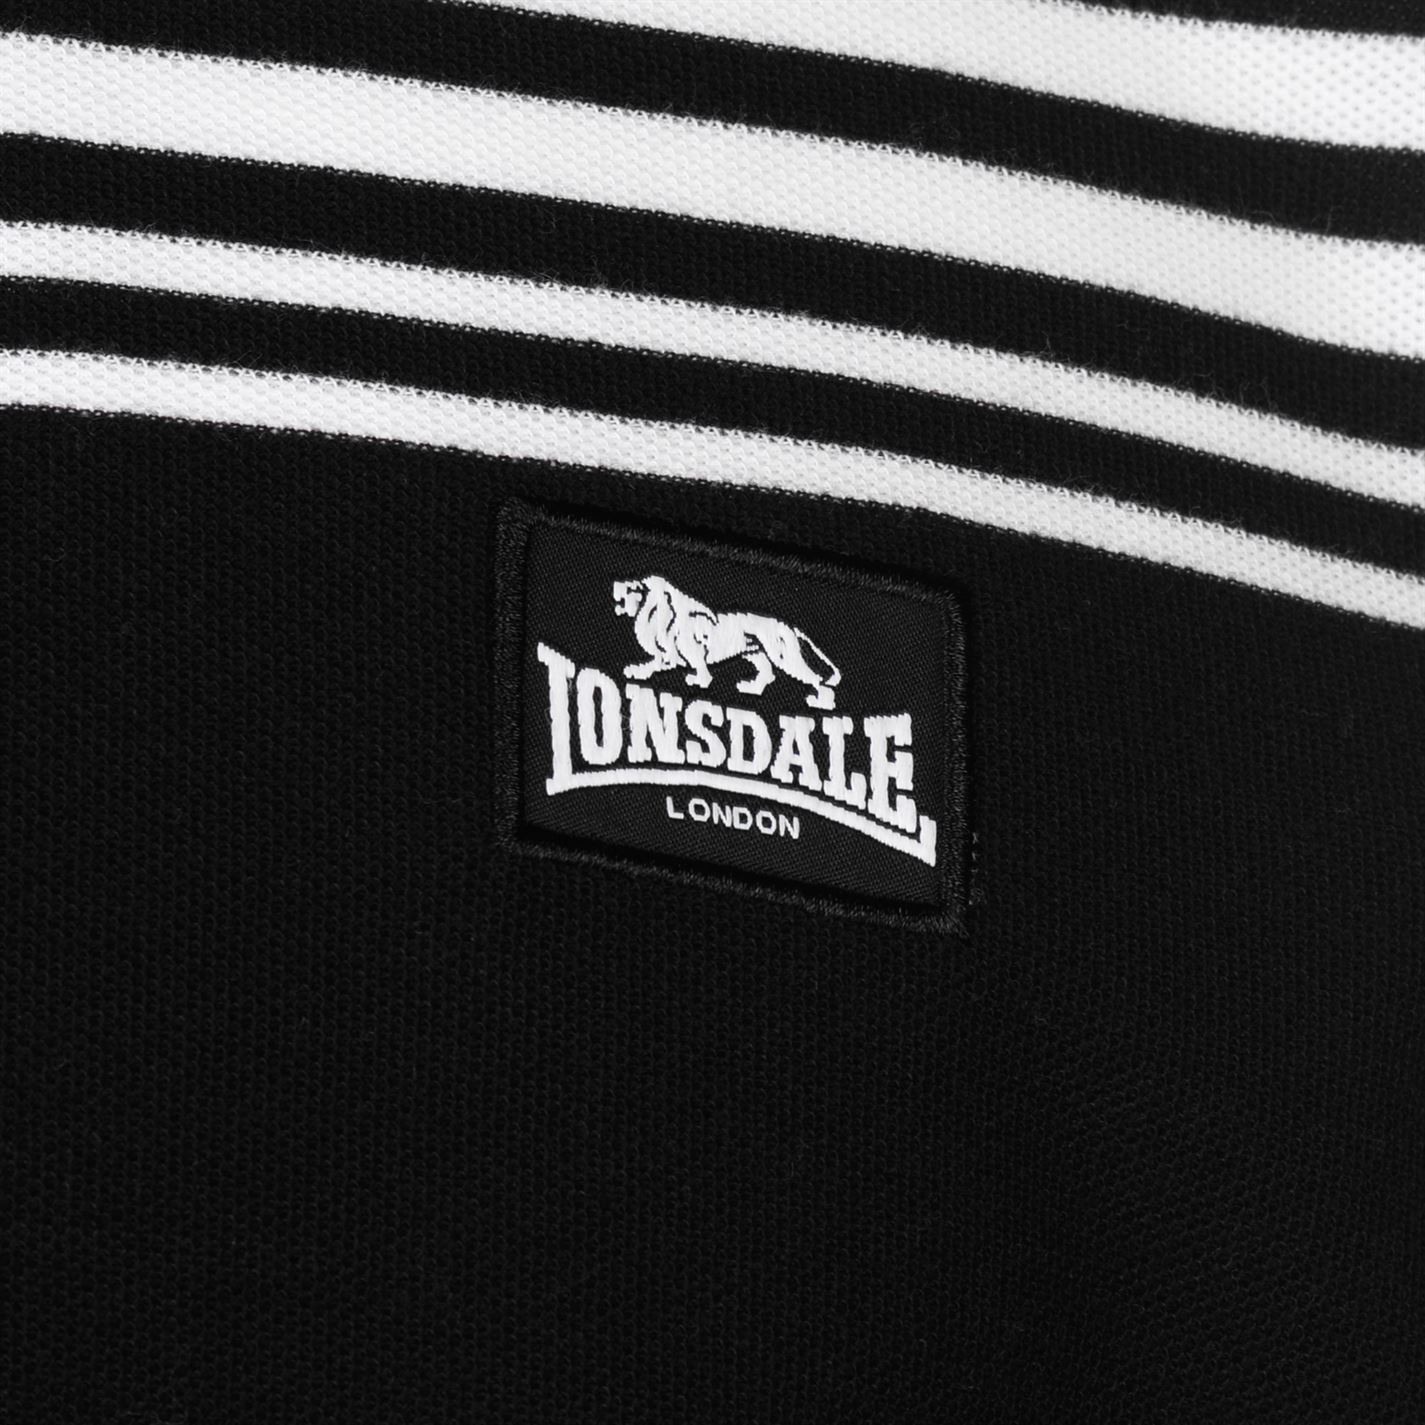 Lonsdale-Mens-Stripe-Polo-Shirt-Classic-Fit-Tee-Top-Short-Sleeve-Button-Placket thumbnail 24